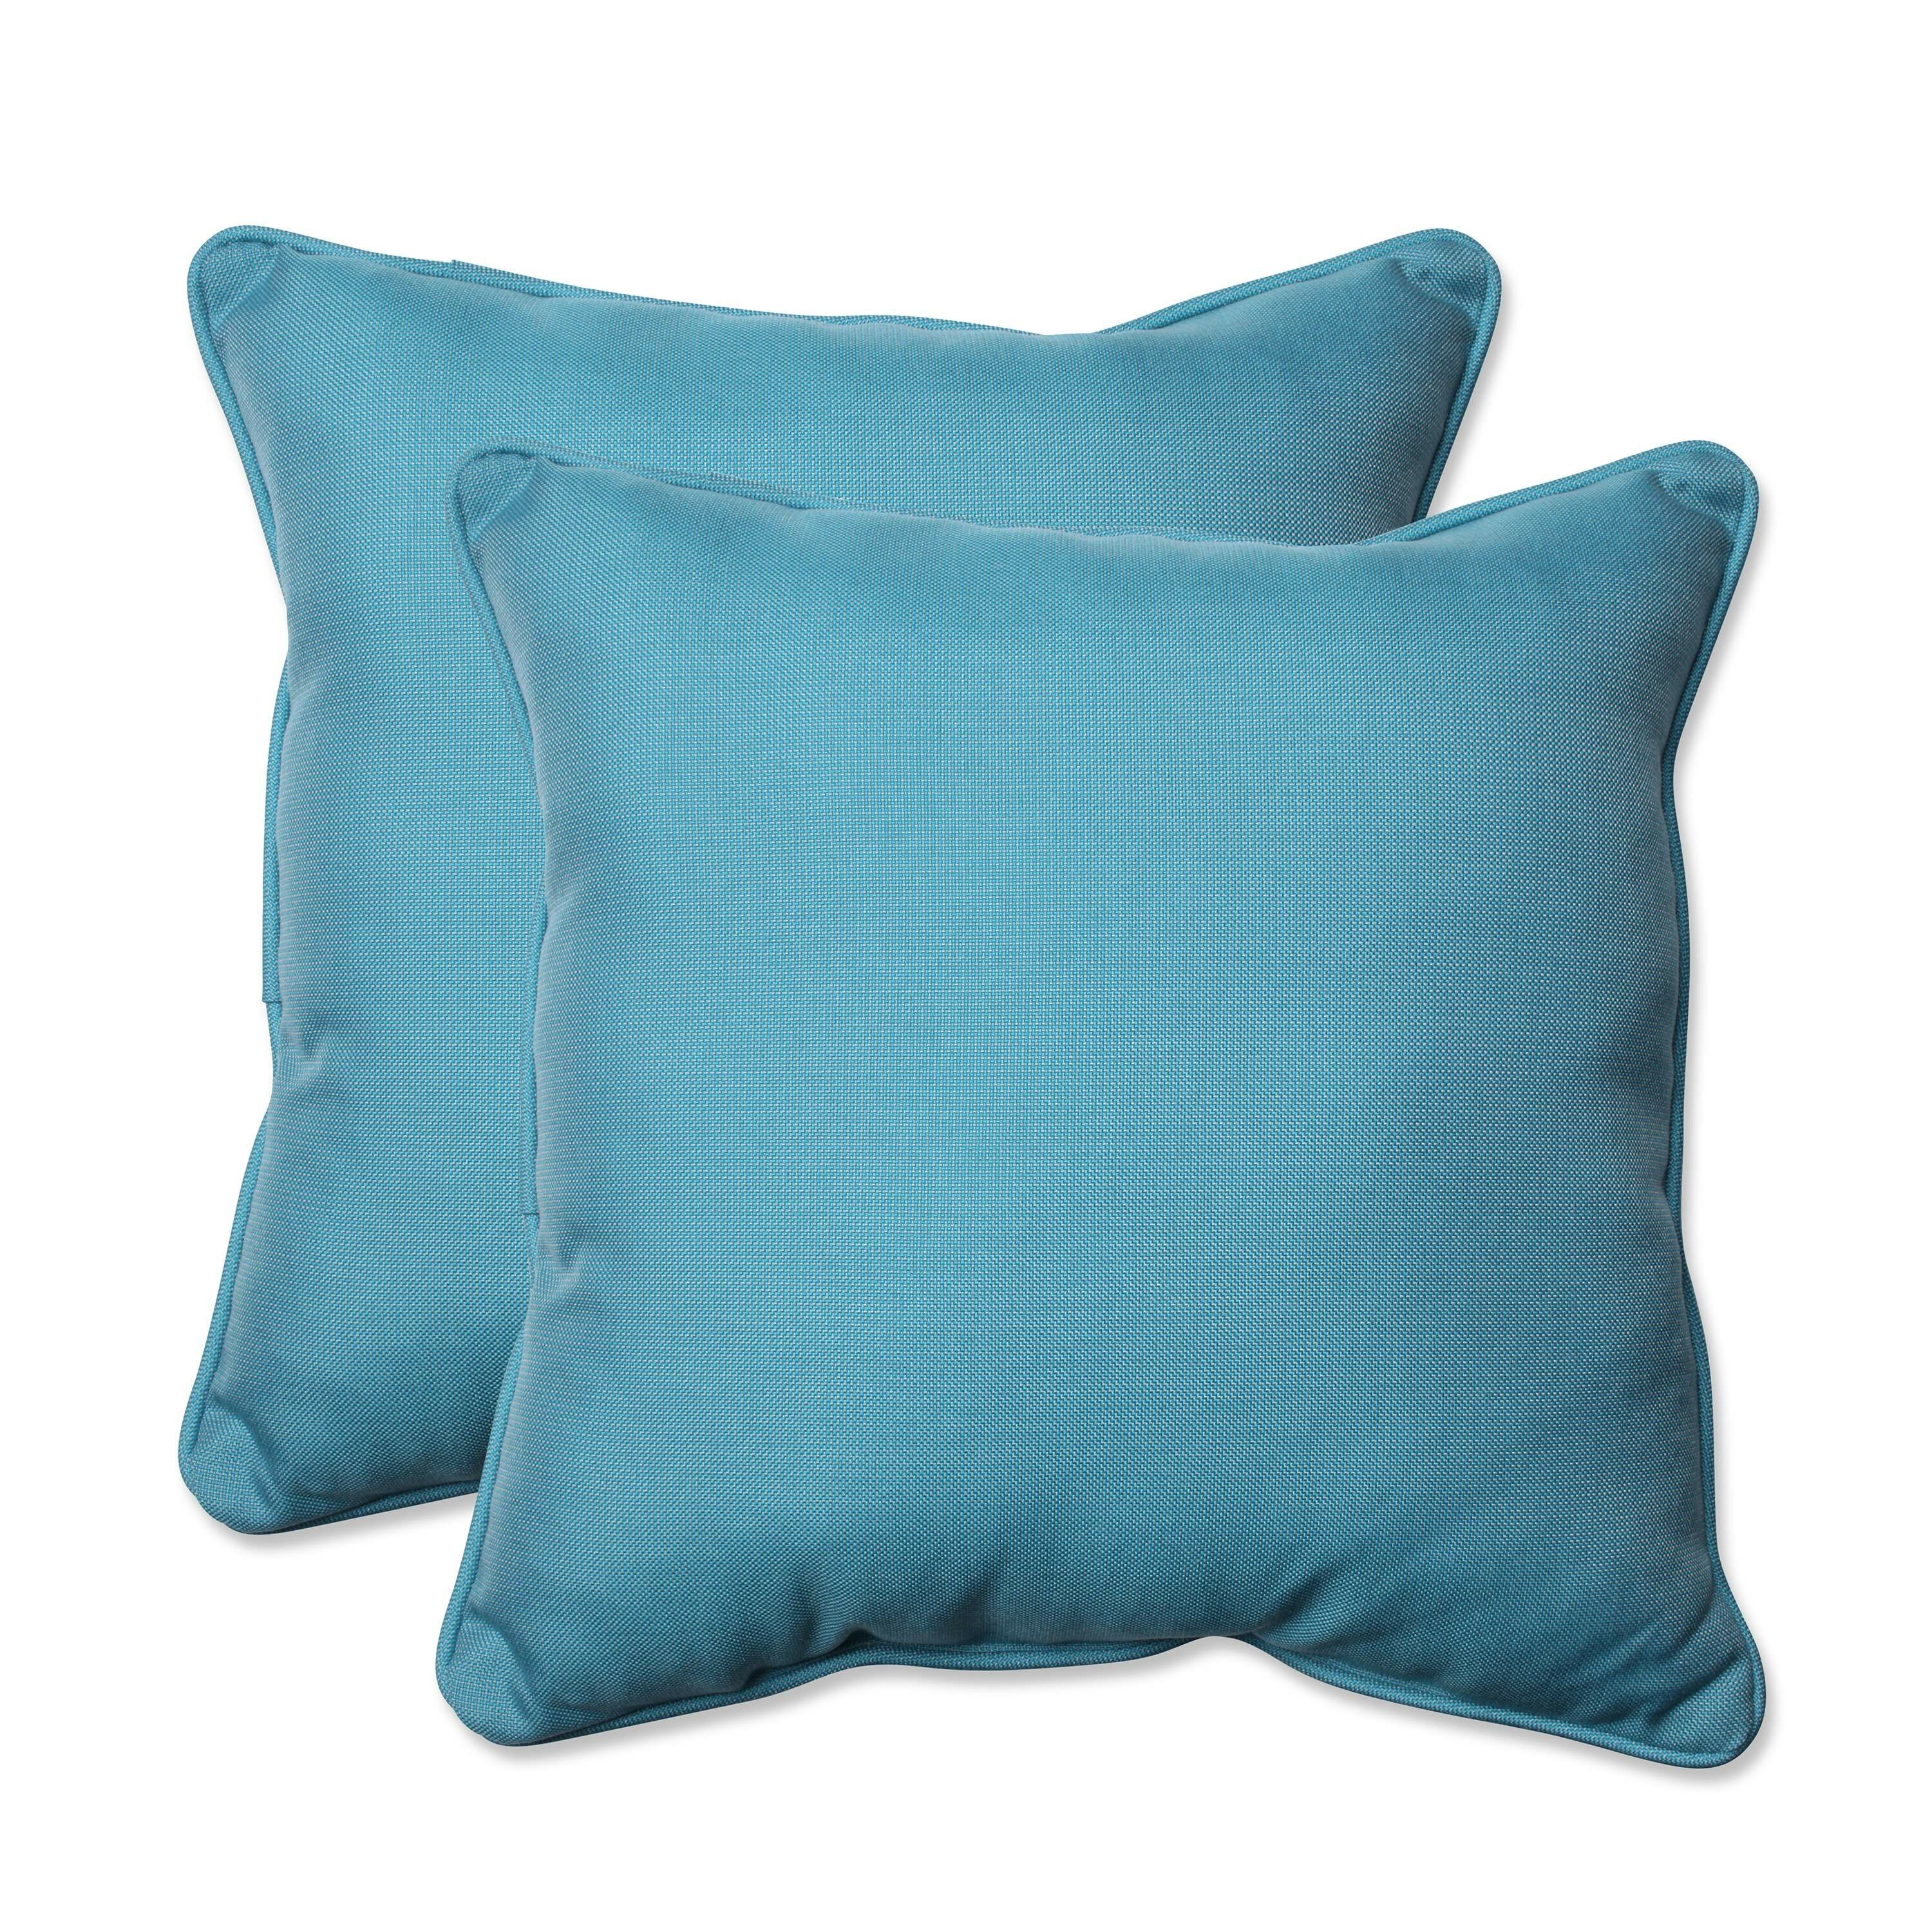 Throw Pillows In Abuja : Pillow Perfect Tweed Indoor/Outdoor Throw Pillow & Reviews Wayfair